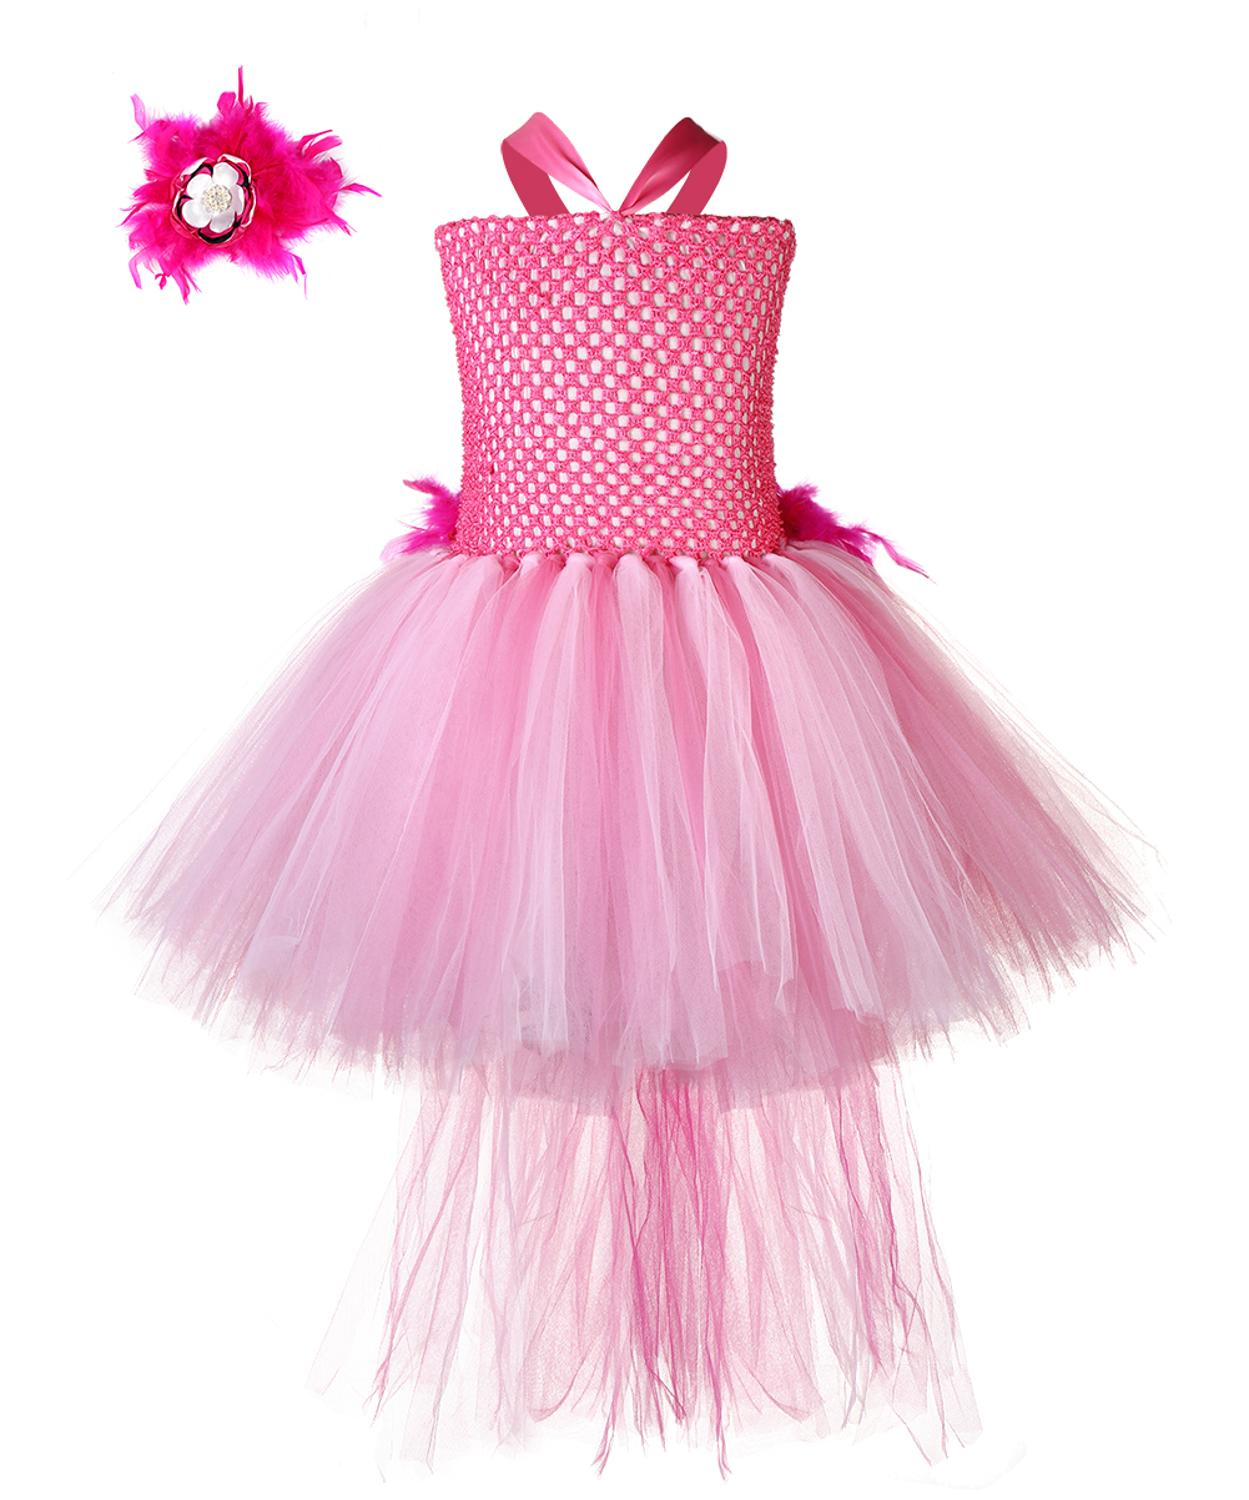 Halloween Flamingo Cosplay Costume Girls Kids Pageant Hot Pink Feather Birds Animal Theme Birthday Party Tutu Dress with Train 1